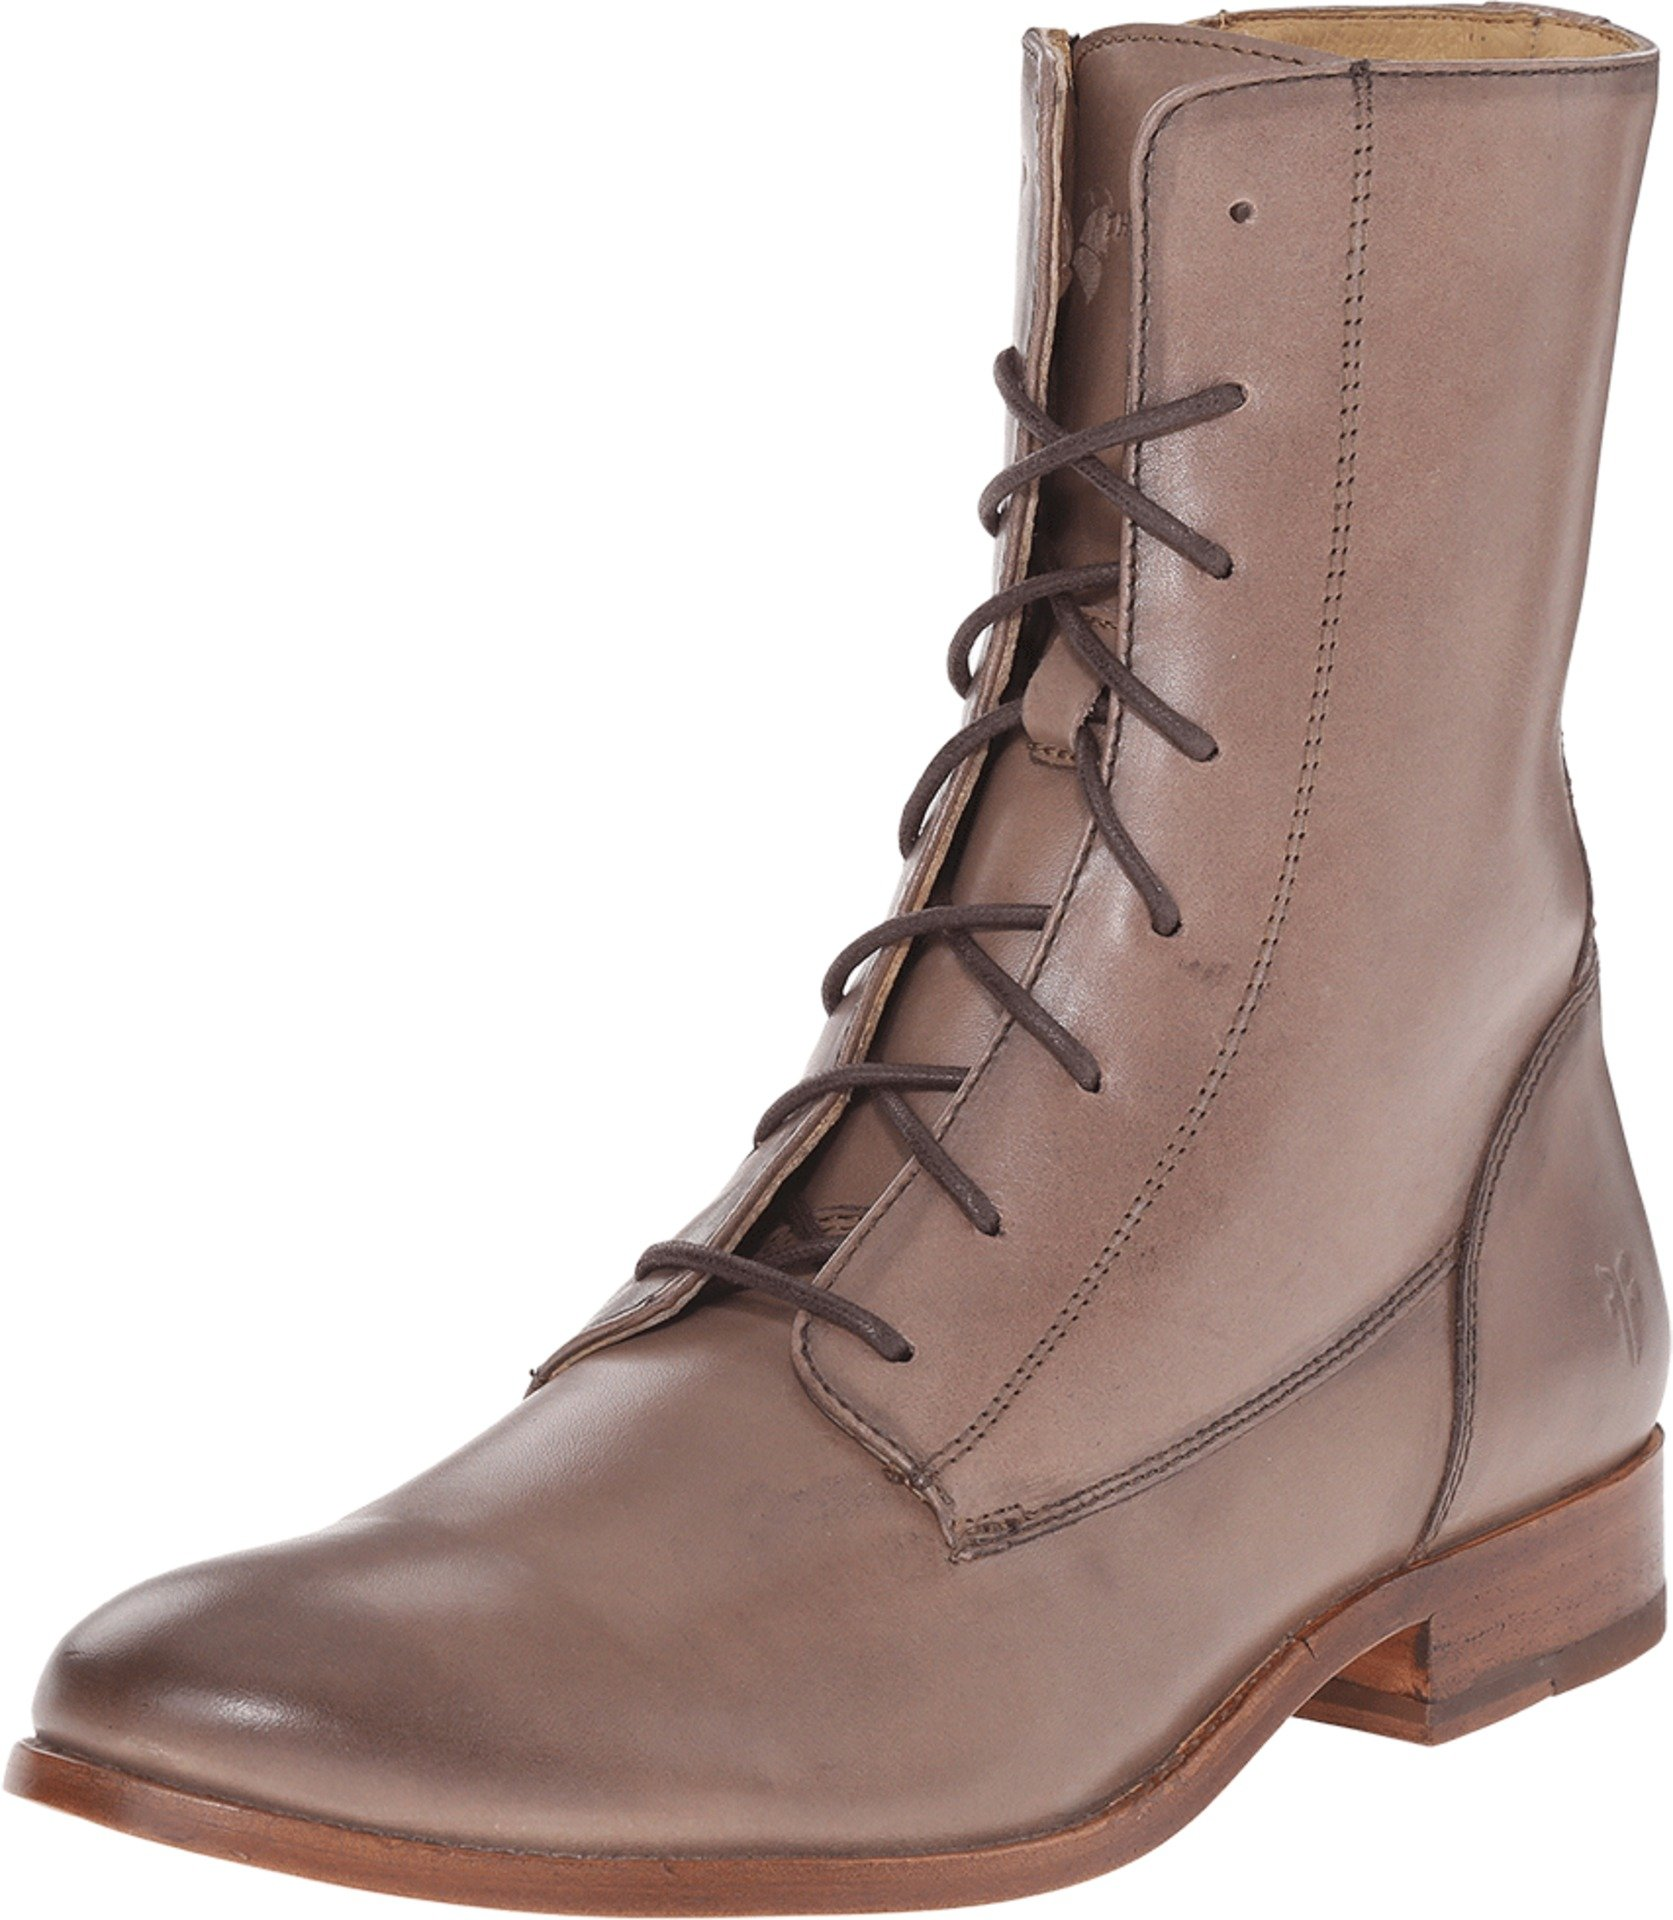 FRYE Women's Melissa Lace Up Boot, Cement Smooth Vintage Leather, 8.5 M US